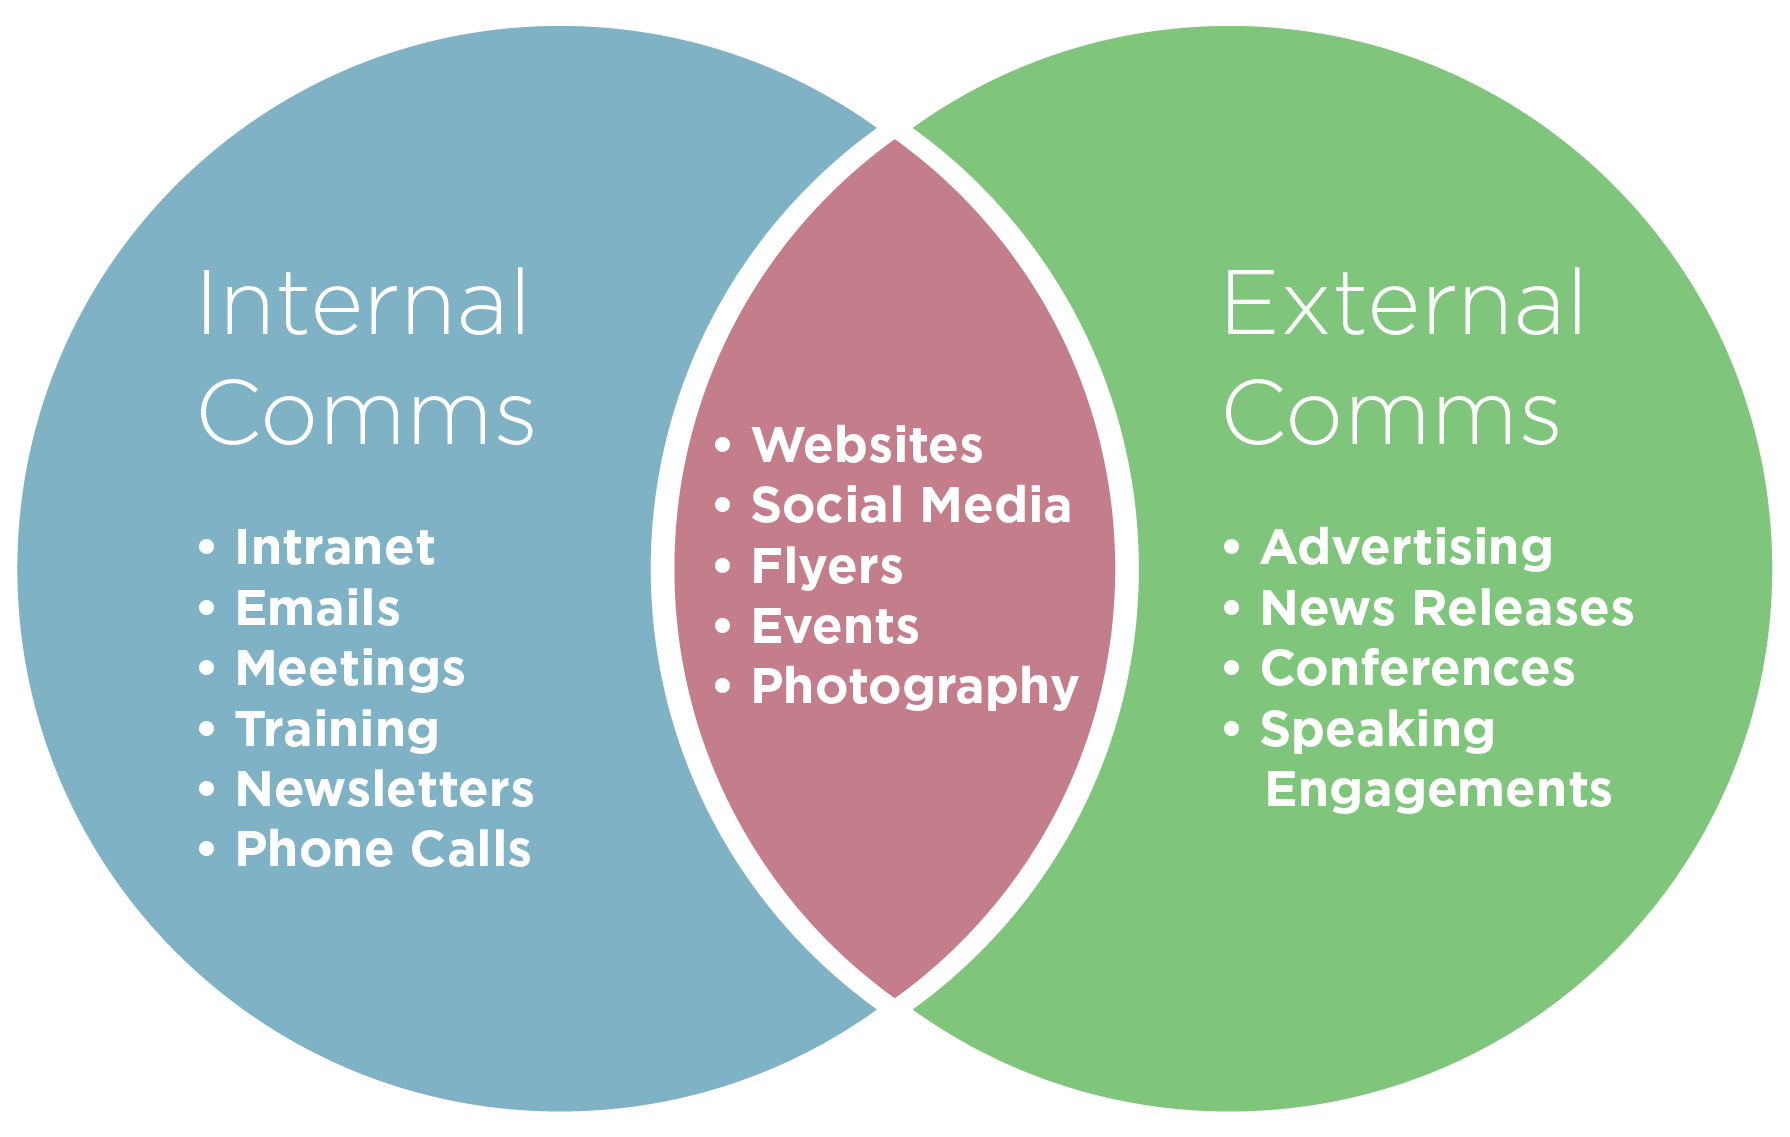 11 Best Ways To Perfect Your Internal Communications